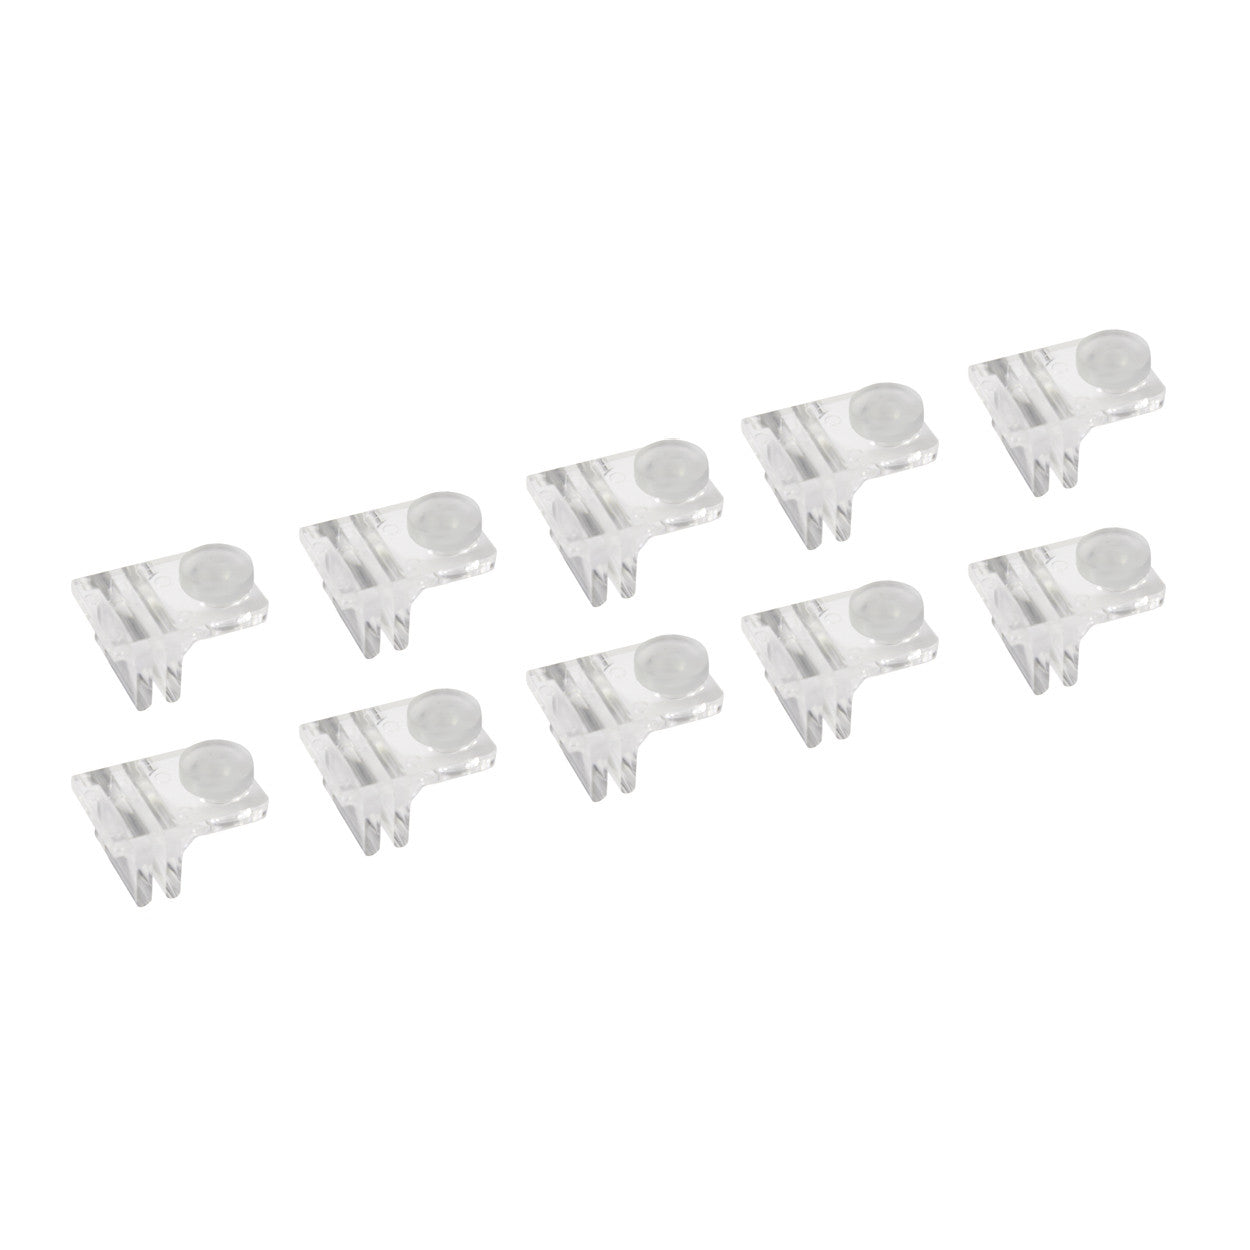 Shelf Support Clip Single Side Pack Of 10 S1388CA